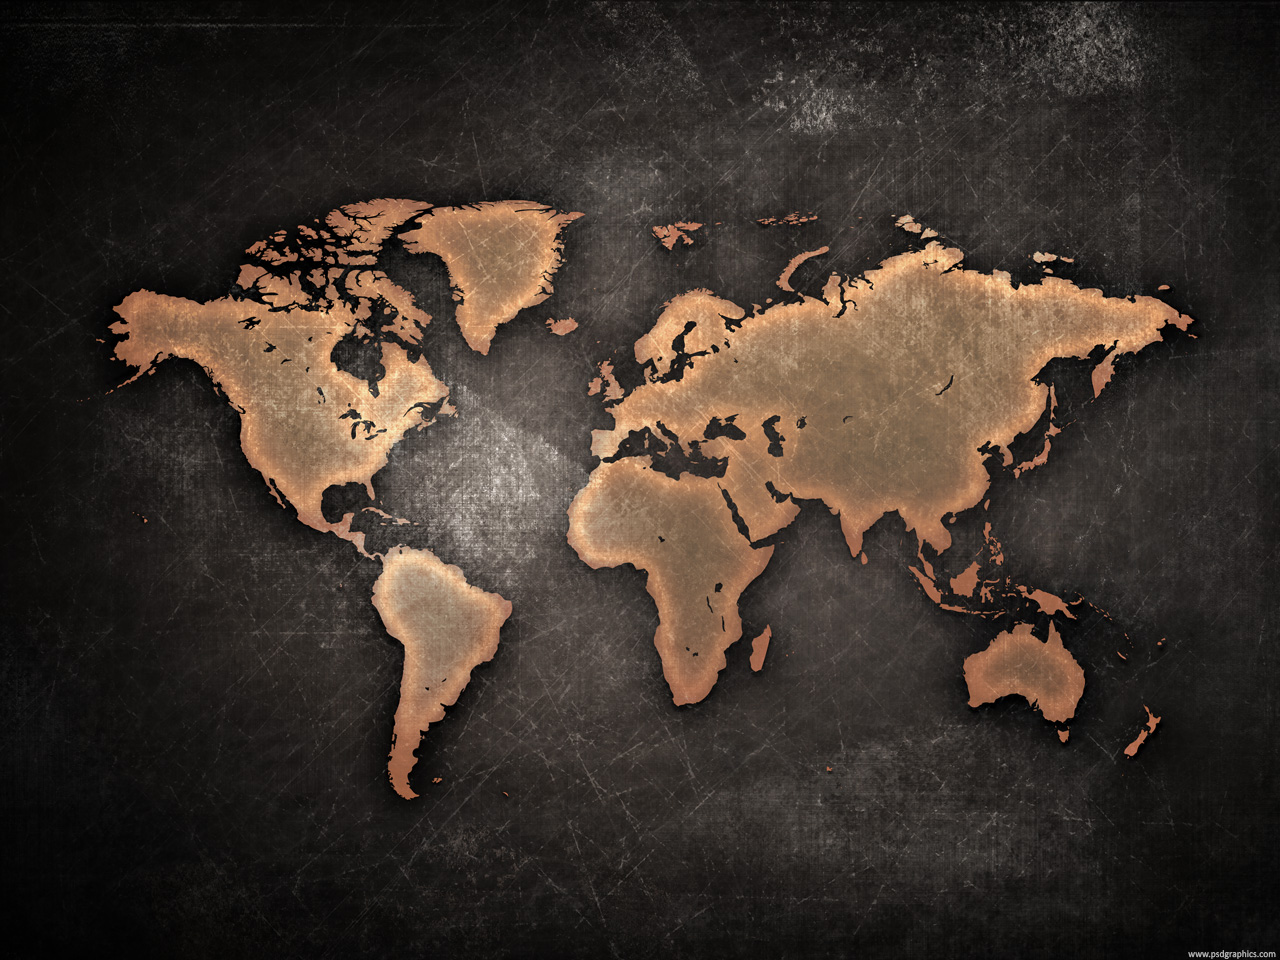 Grunge world map psdgraphics color theme black orange author psd graphics might be useful similar graphic blank world map gumiabroncs